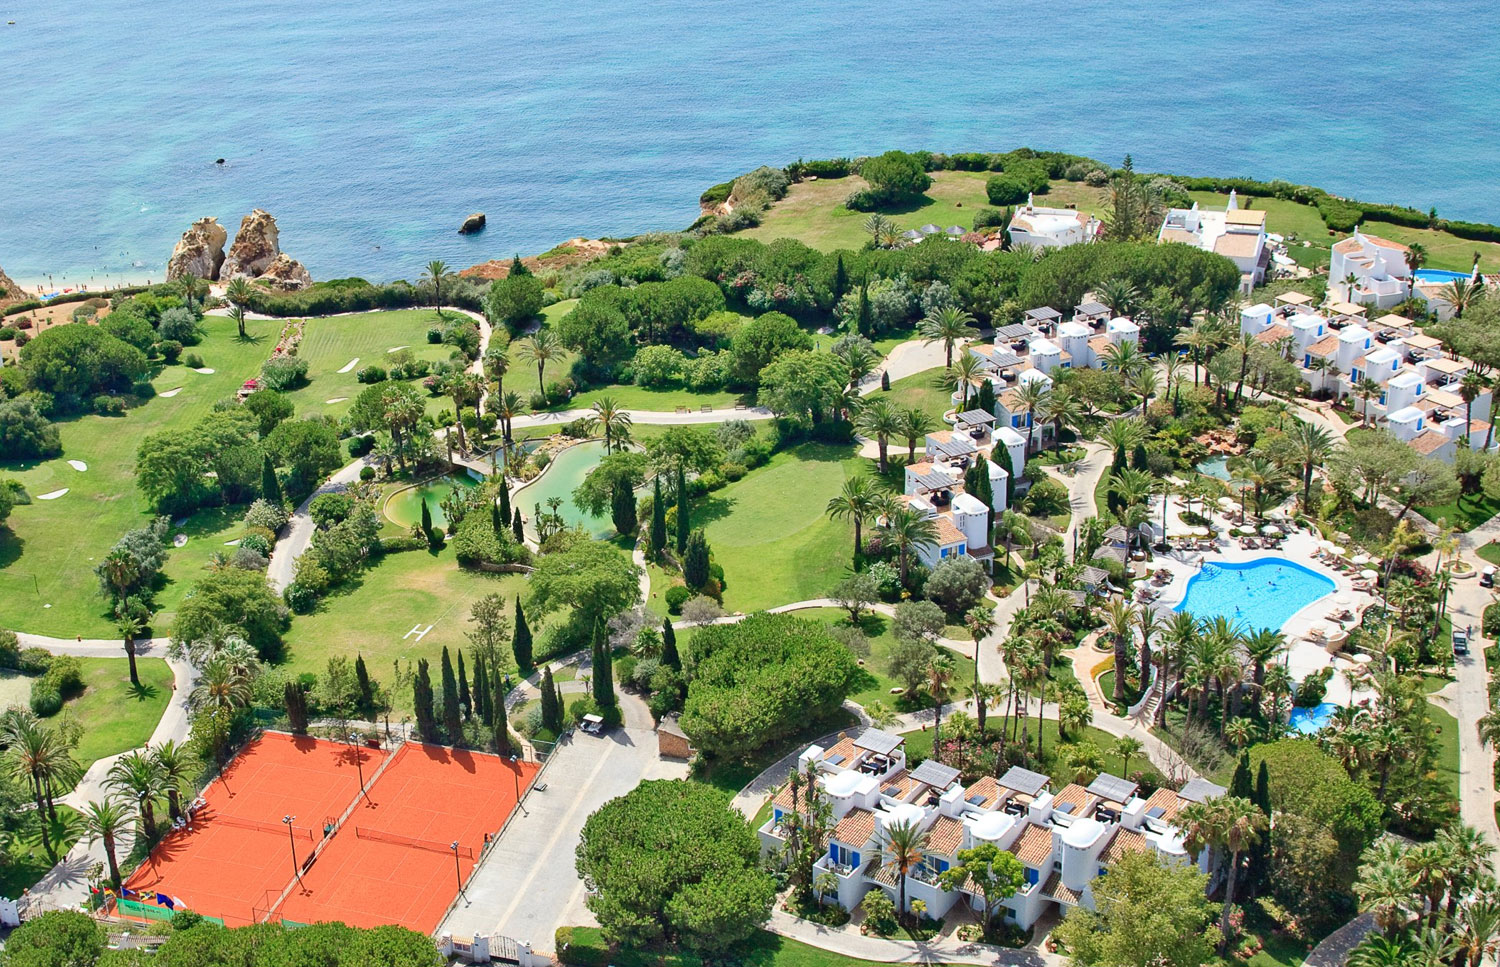 Vila Vita Parc Hotel - Extensive Grounds